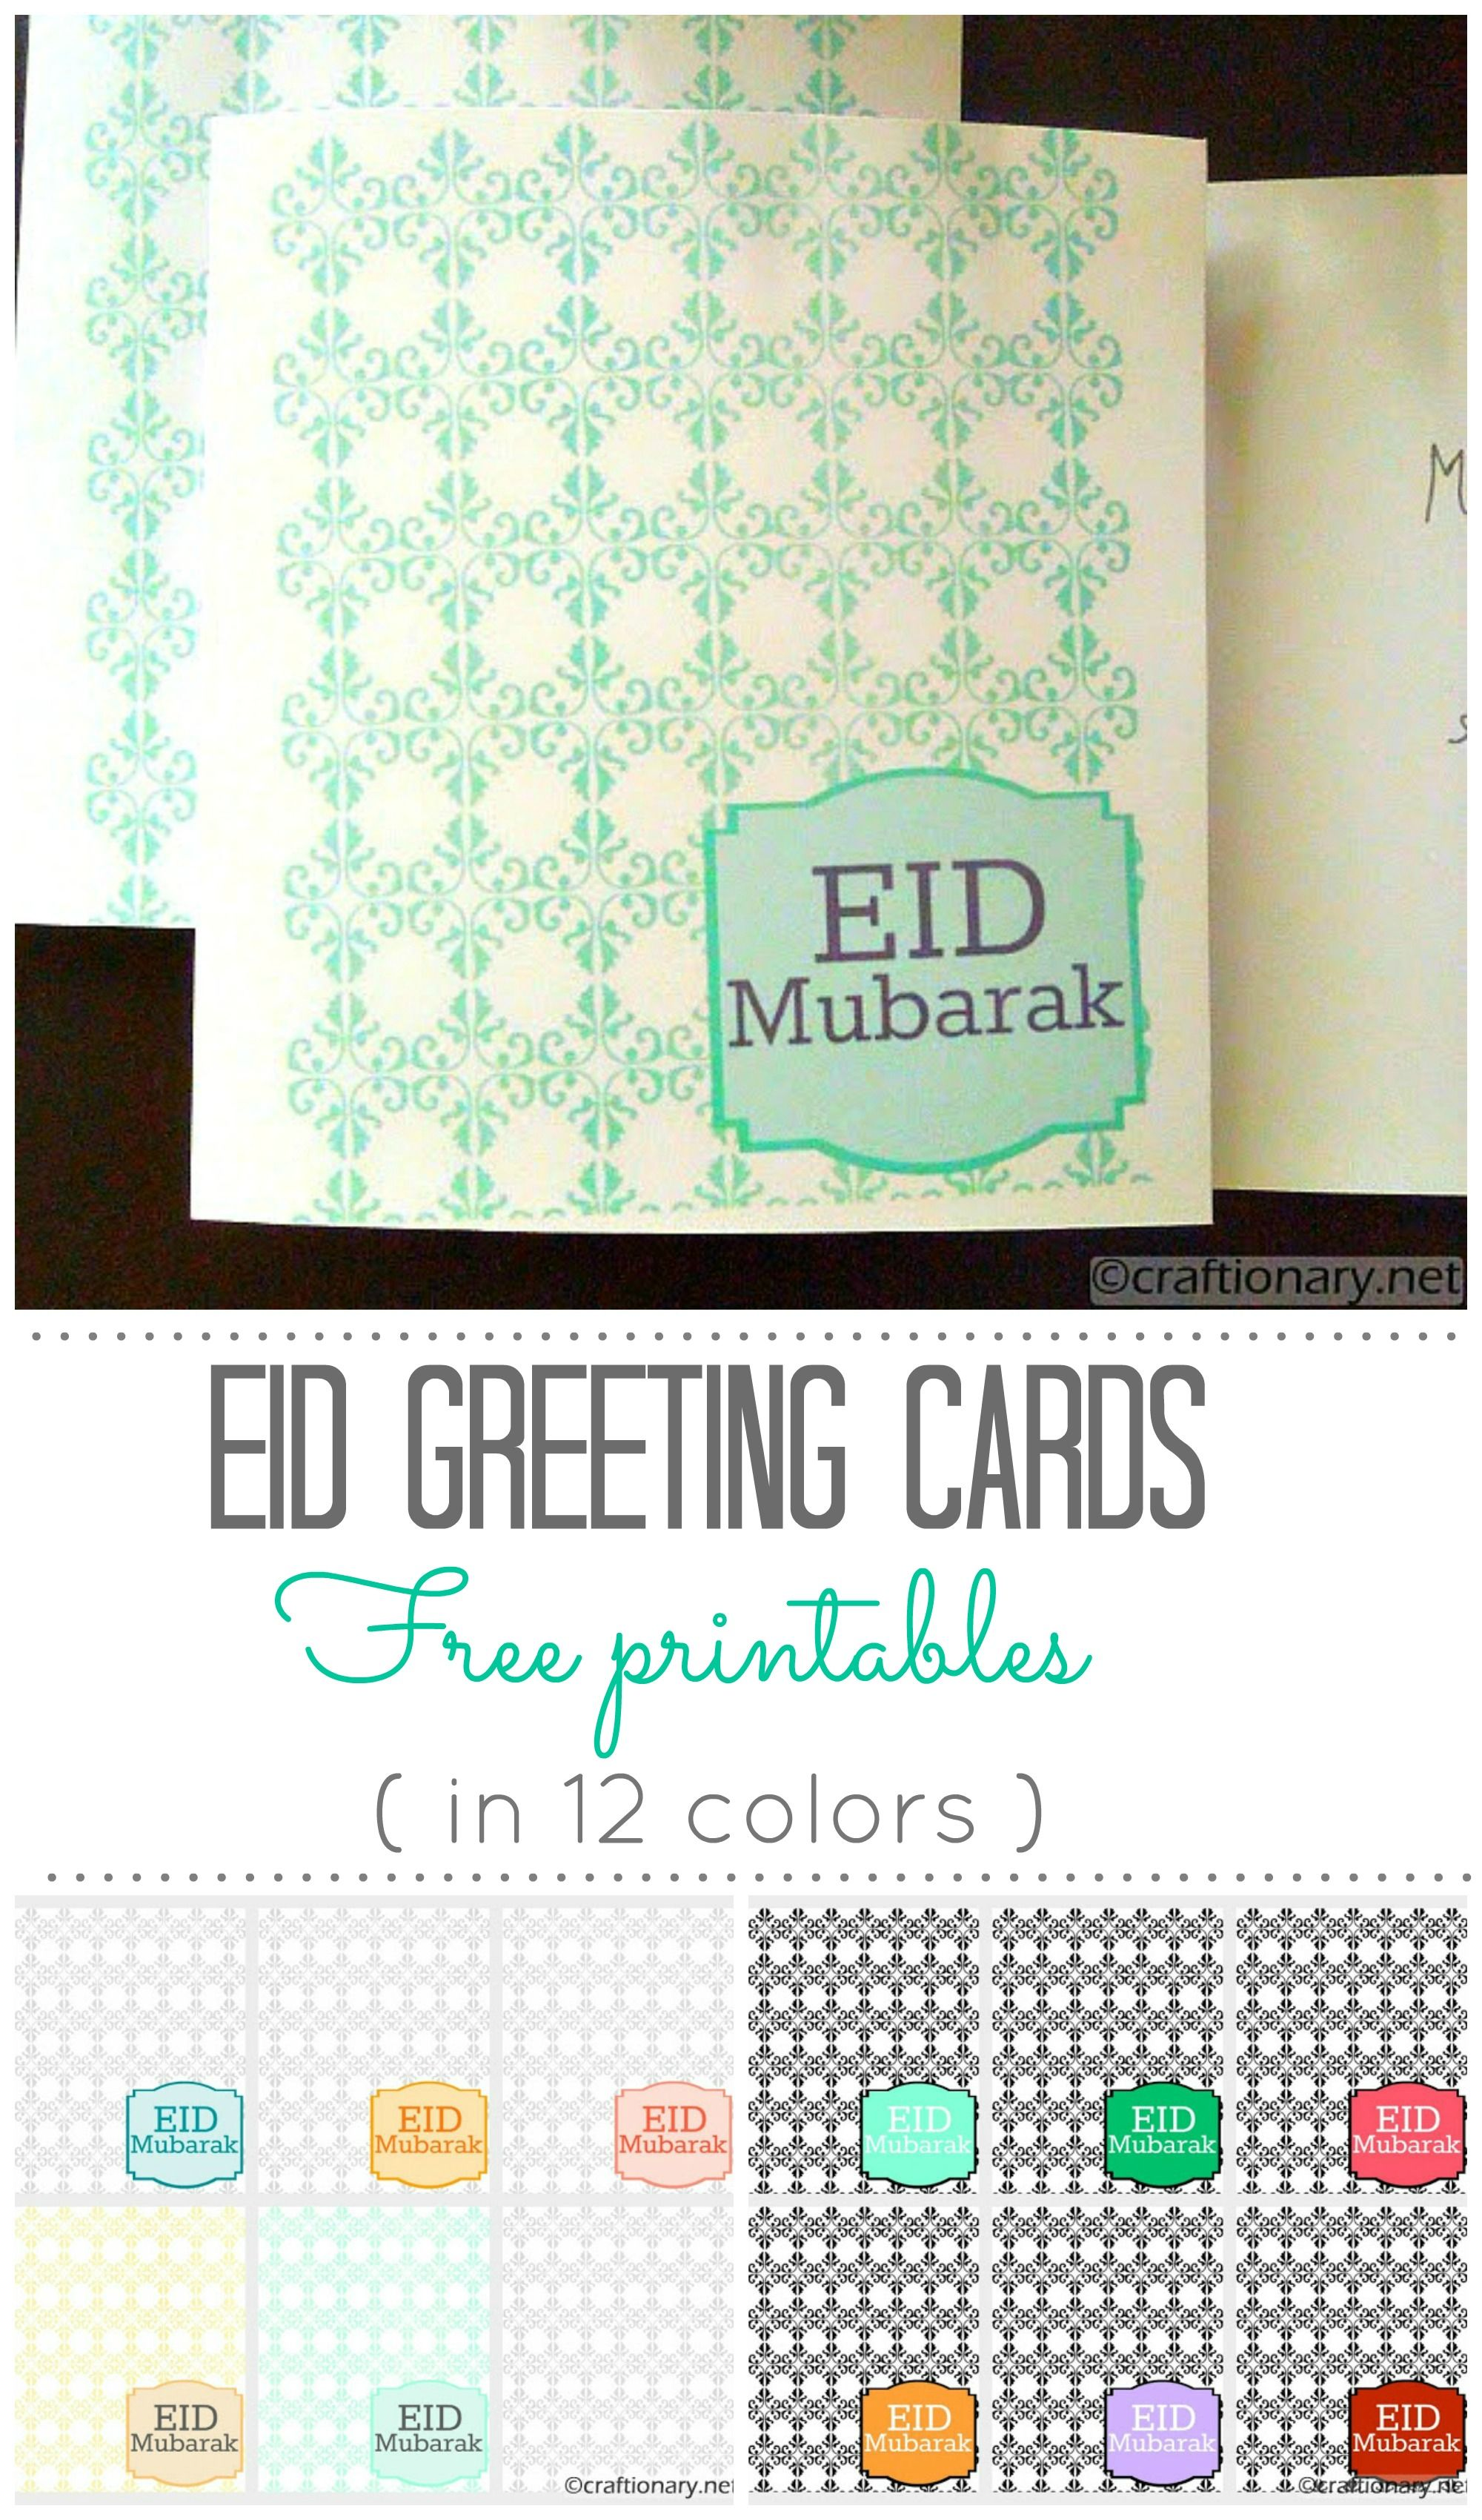 Best eid greeting cards free printable eid greeting cards free diy eid card best eid greeting cards for your loved ones personalized and custom free printable greeting cards in many new colors and modern designs m4hsunfo